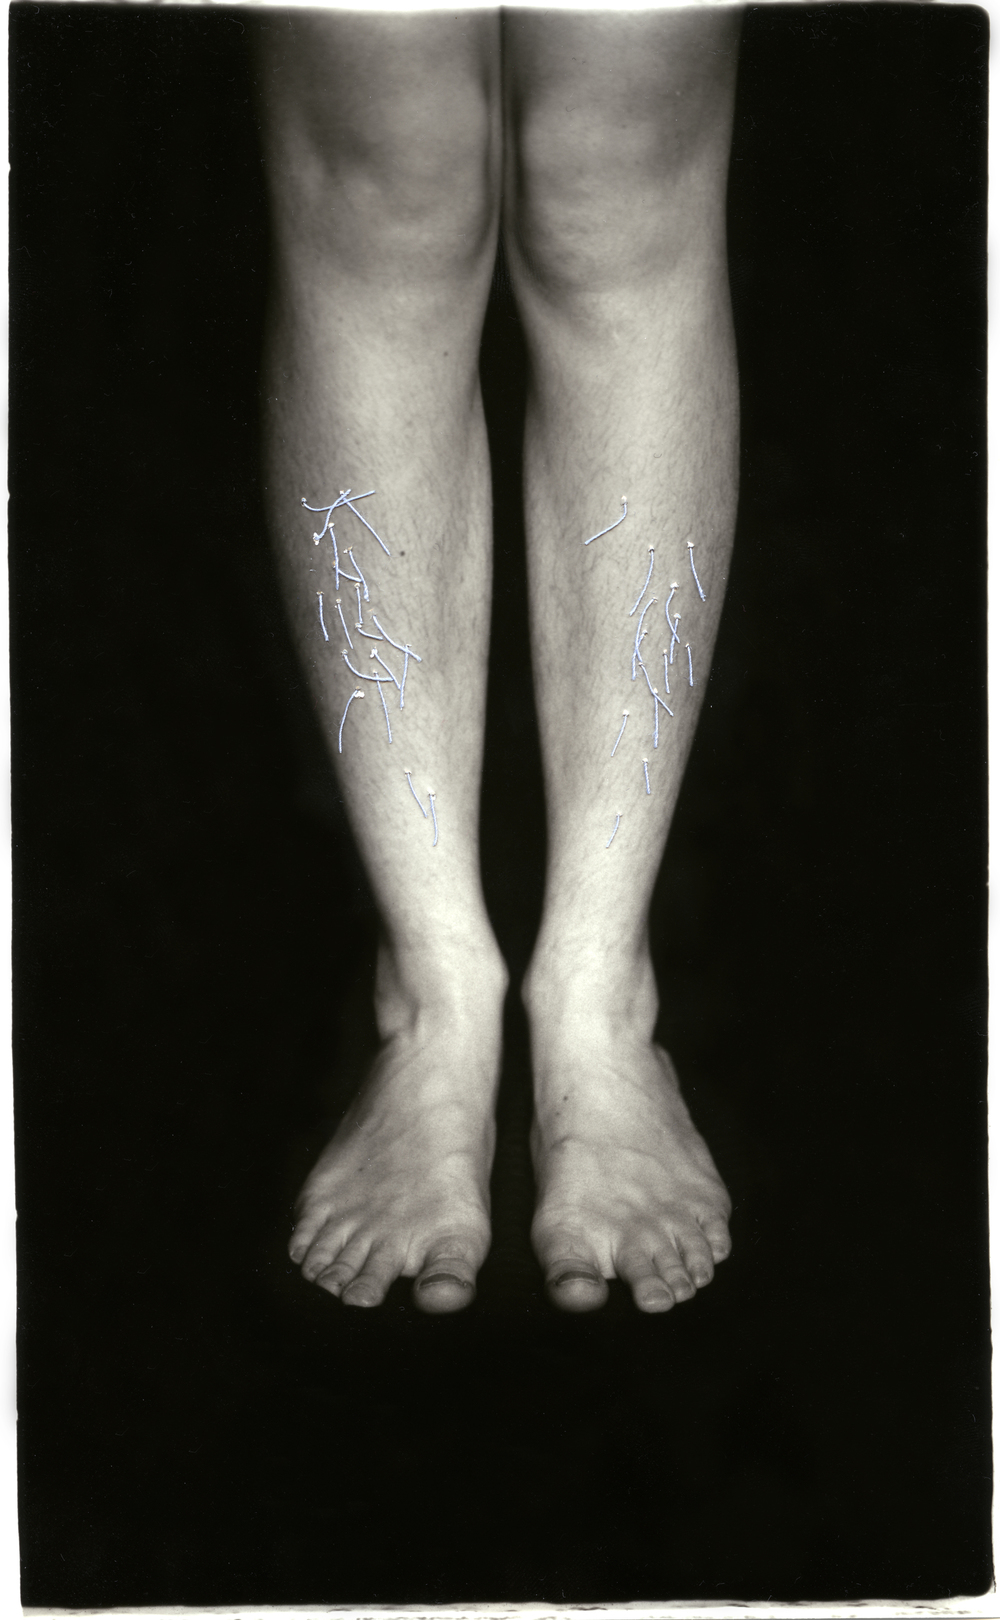 Ingrown    Silver Gelatin Print, Thread, 2014